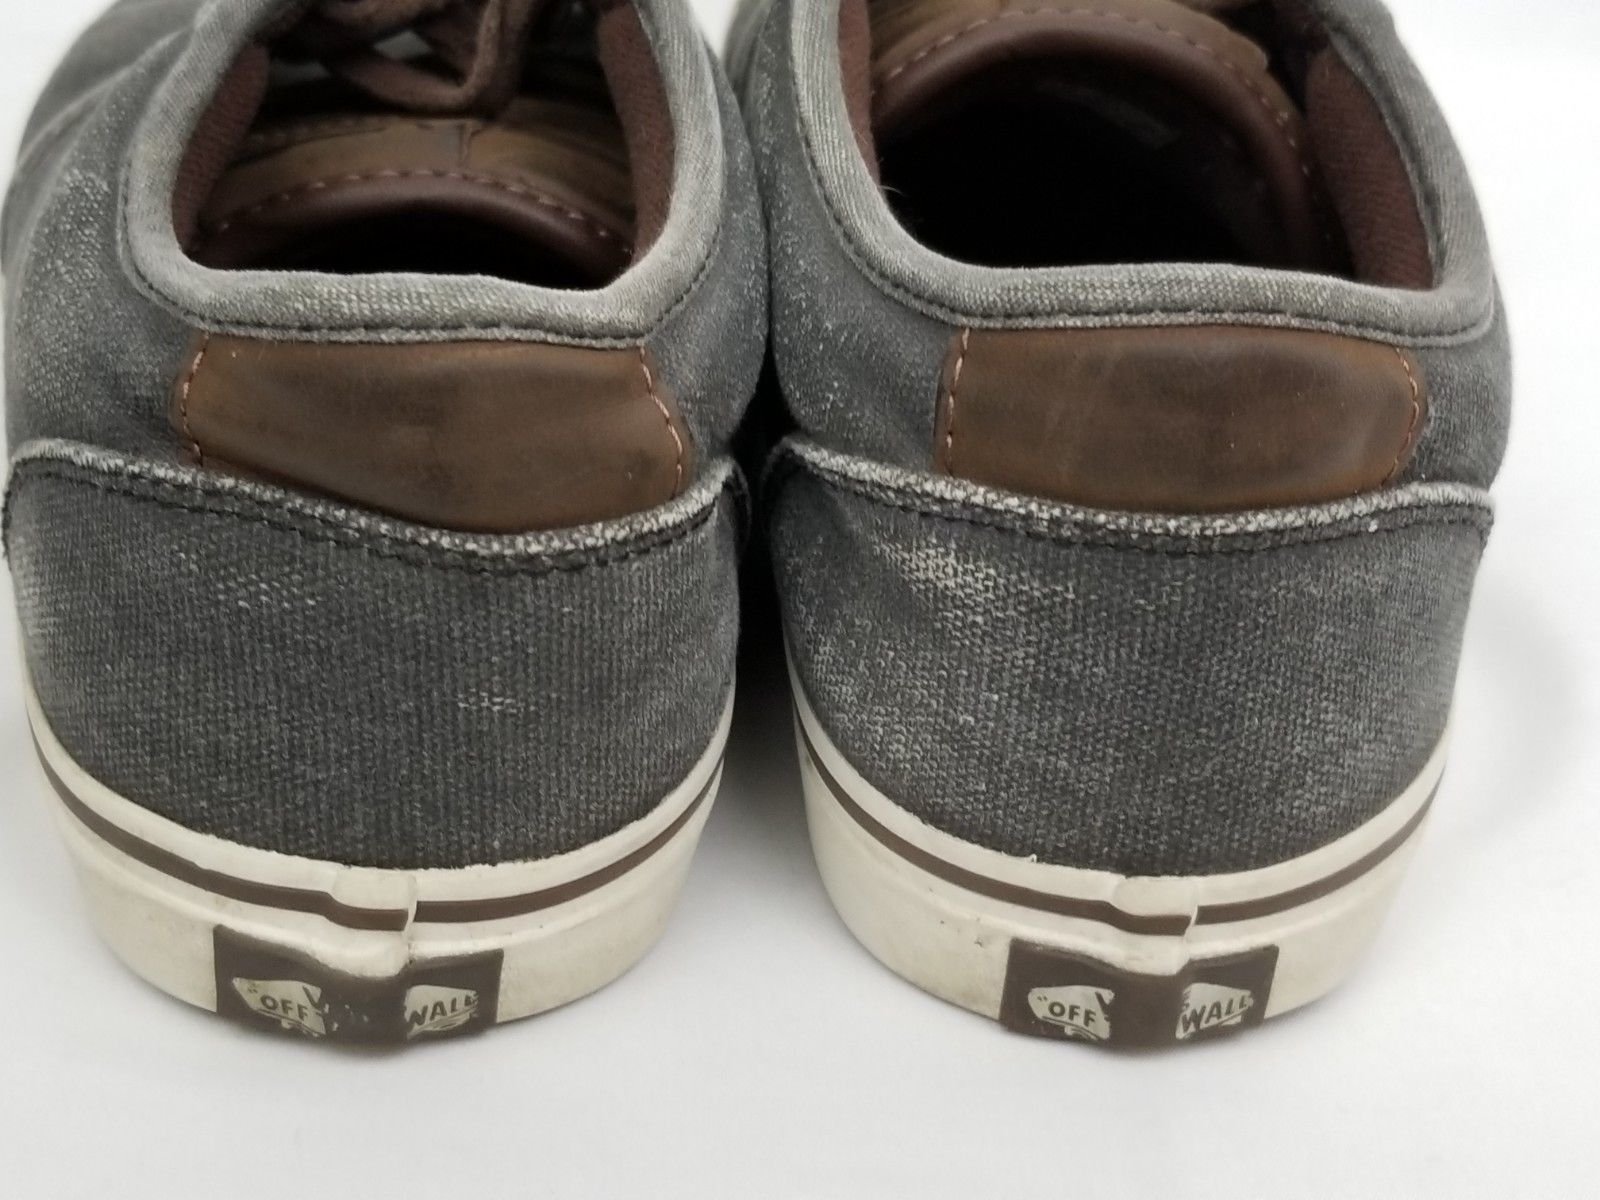 Mens Size 10 Gray Brown Vans Sneakers Shoes Lace Up 721356 image 6